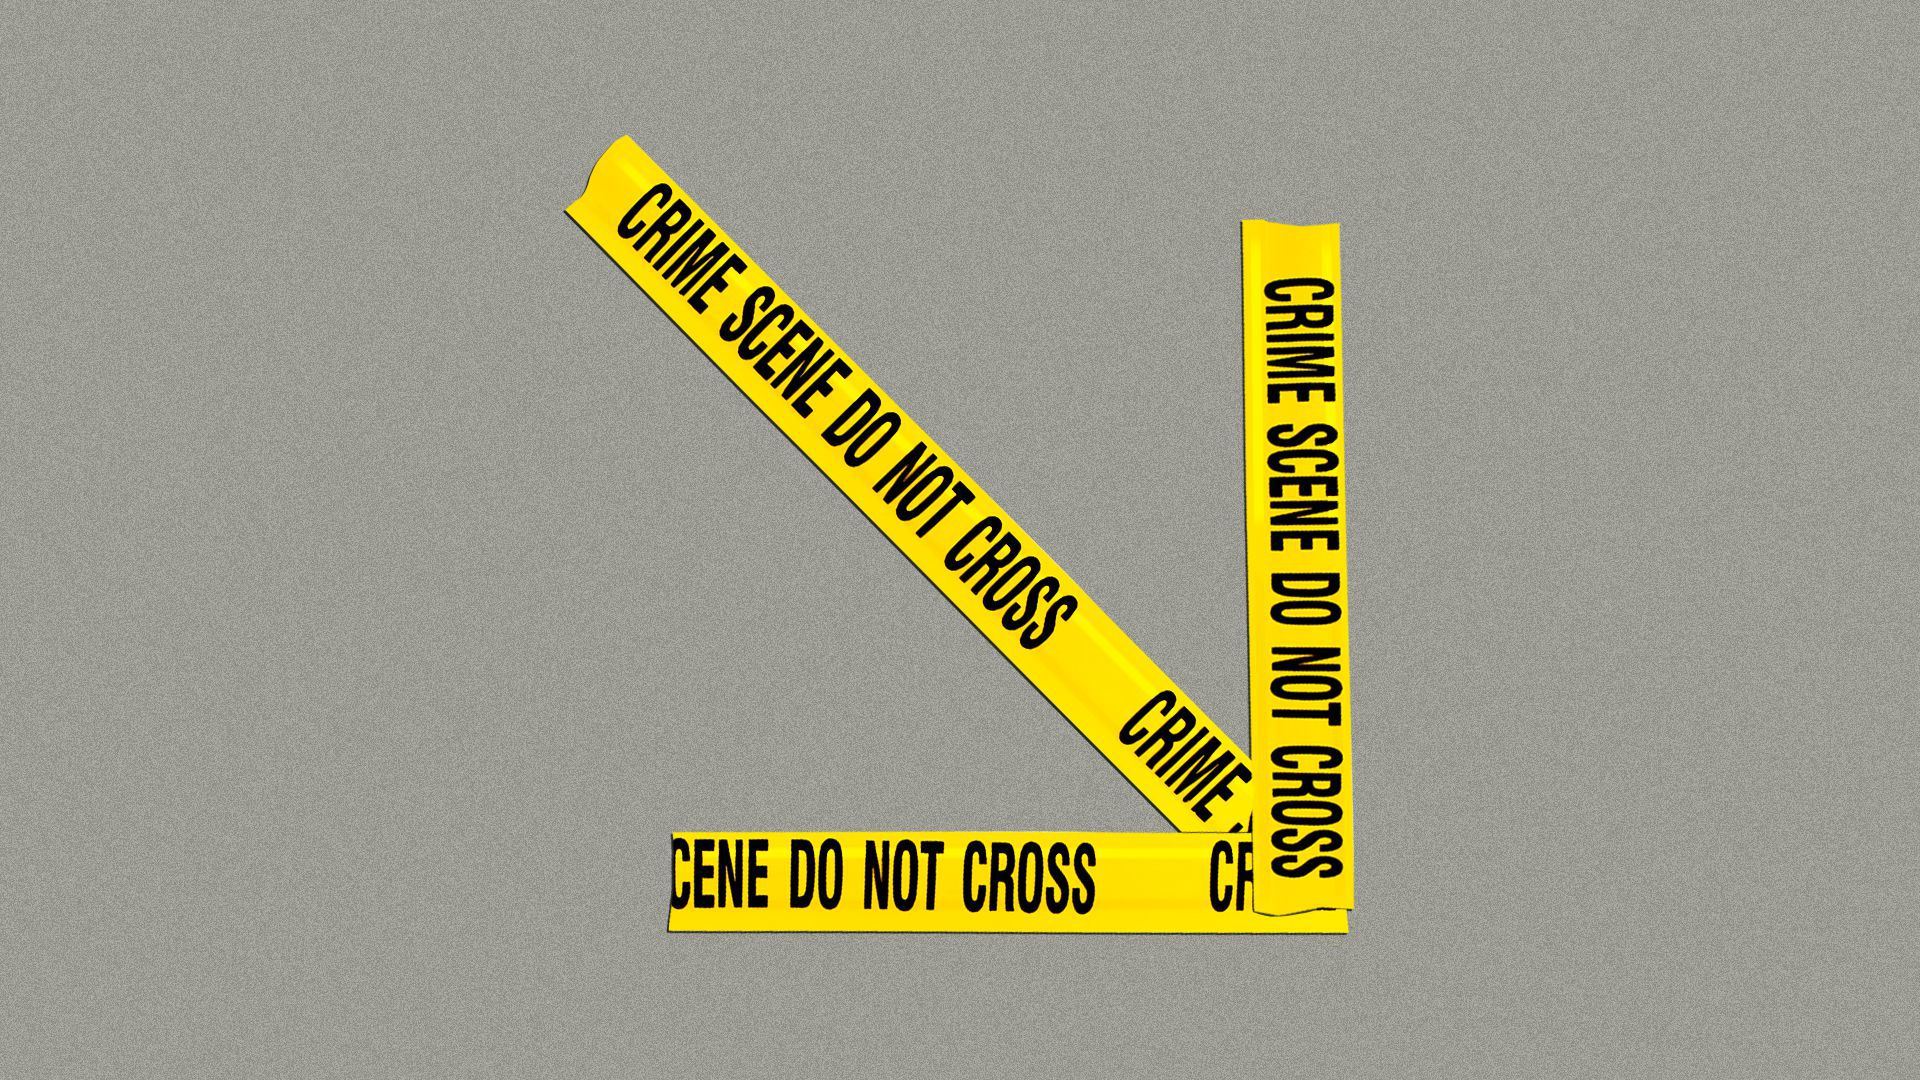 Illustration of a downward arrow made out of crime-scene tape.